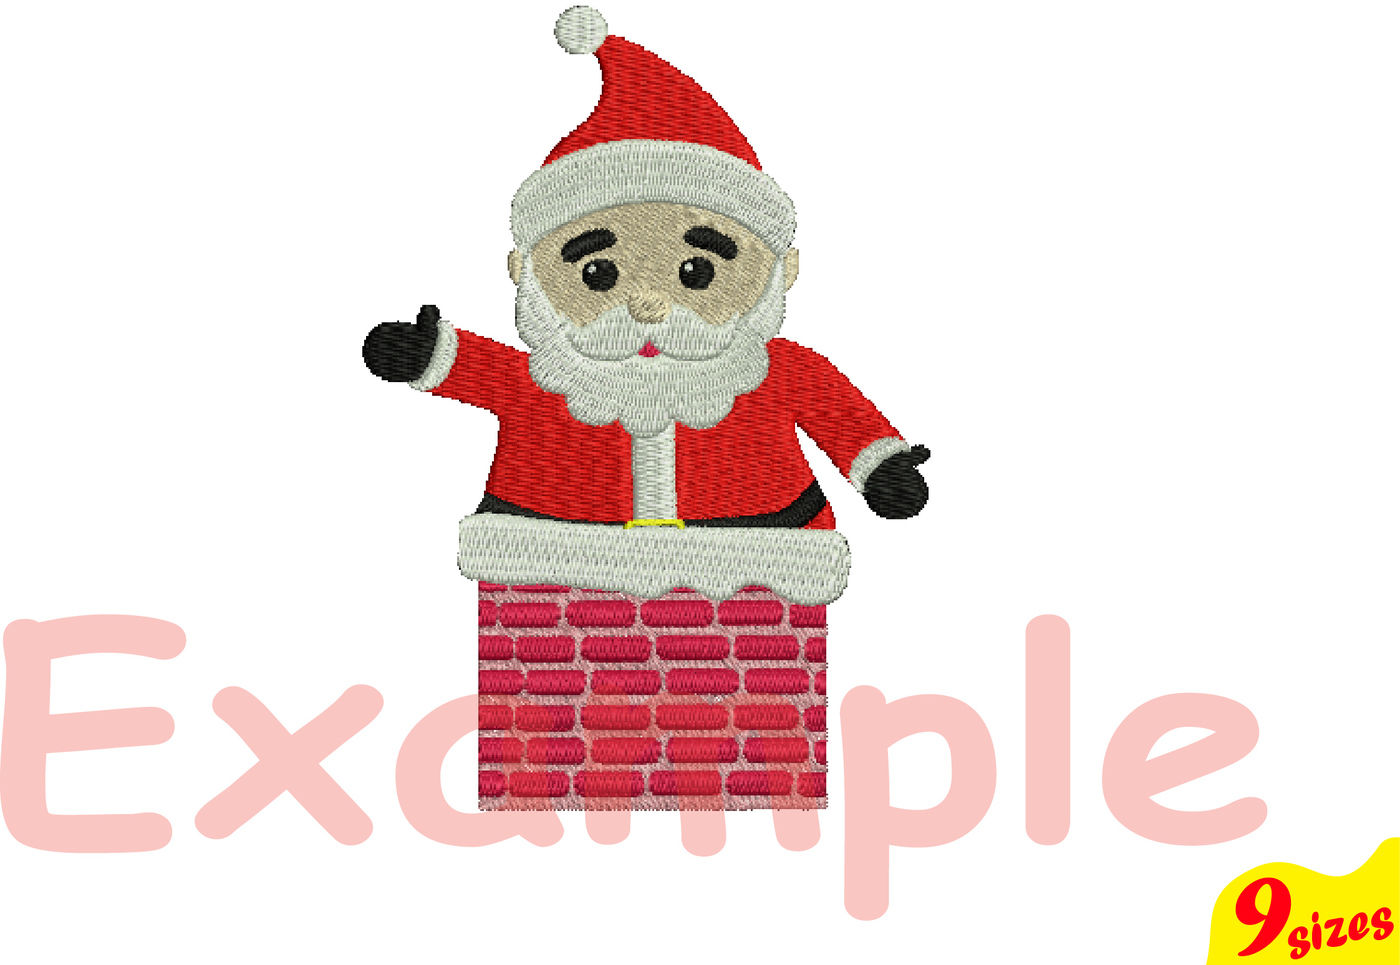 Santa Claus Embroidery Design Machine Instant Download Commercial Use Digital File 4x4 5x7 Hoop Icon Symbol Sign Christmas Chimney Winter Holiday Xmas 121b By Hamhamart Thehungryjpeg Com